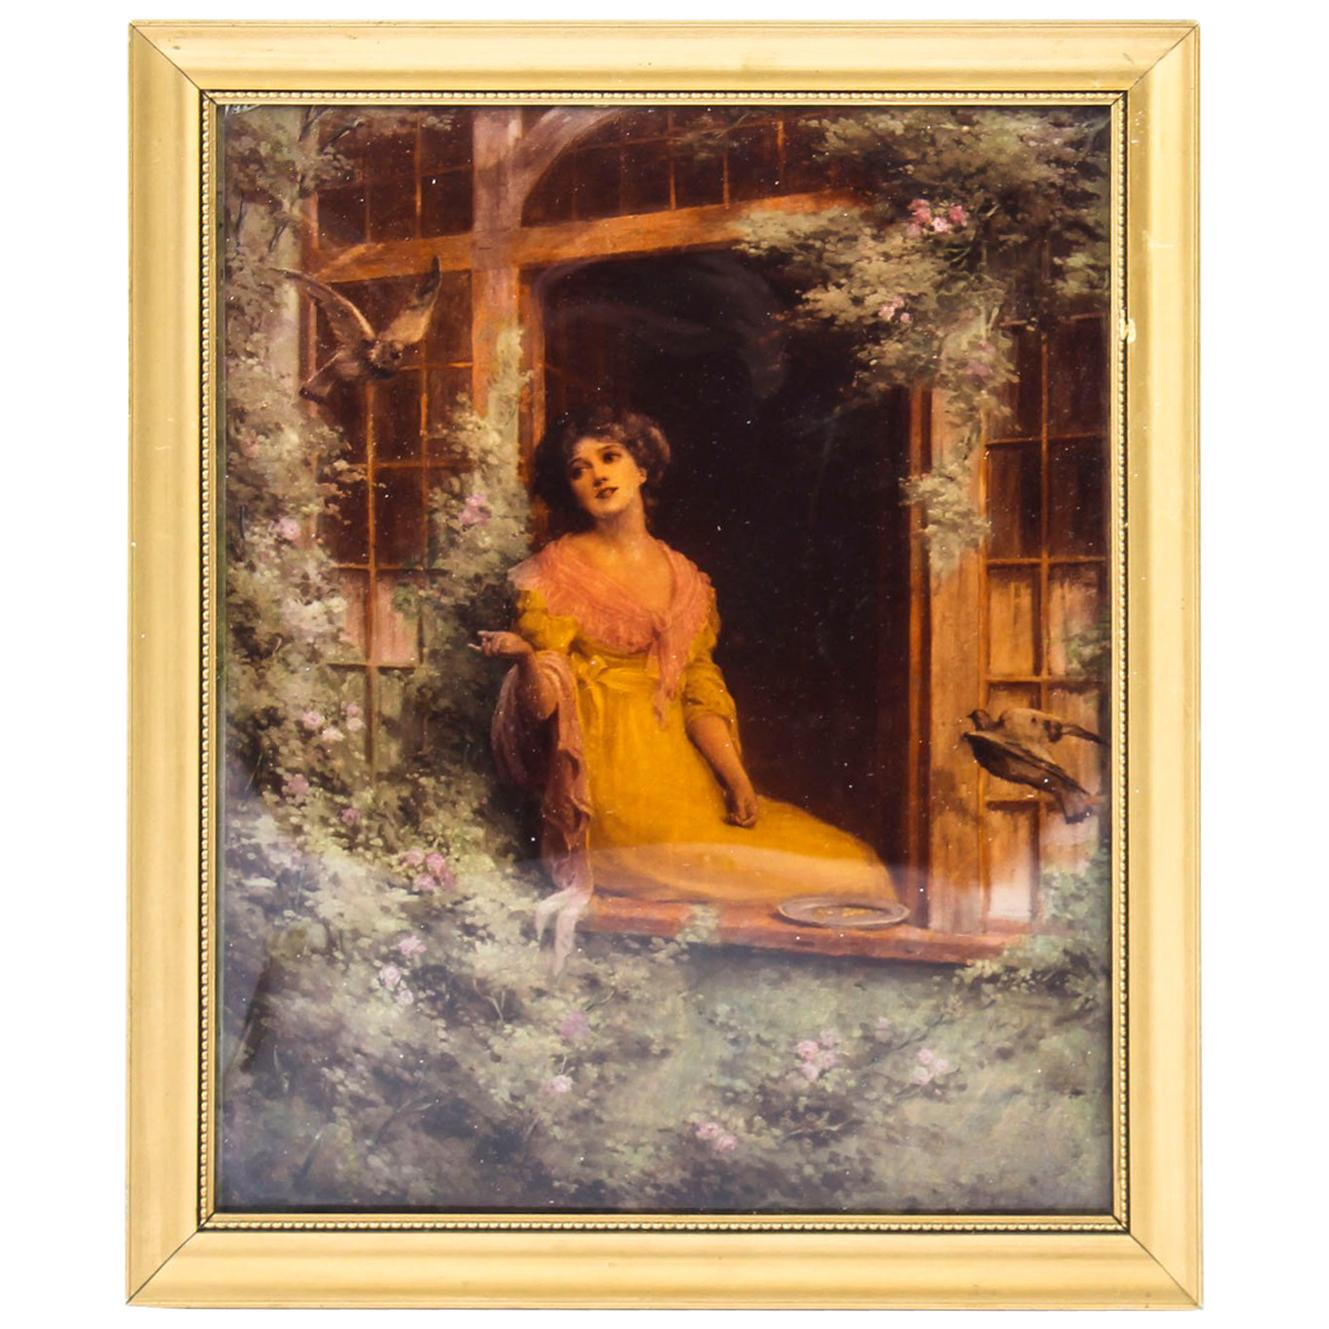 Antique Victorian Crystoleum Picture Painting of a Lady by a Window 19th Century